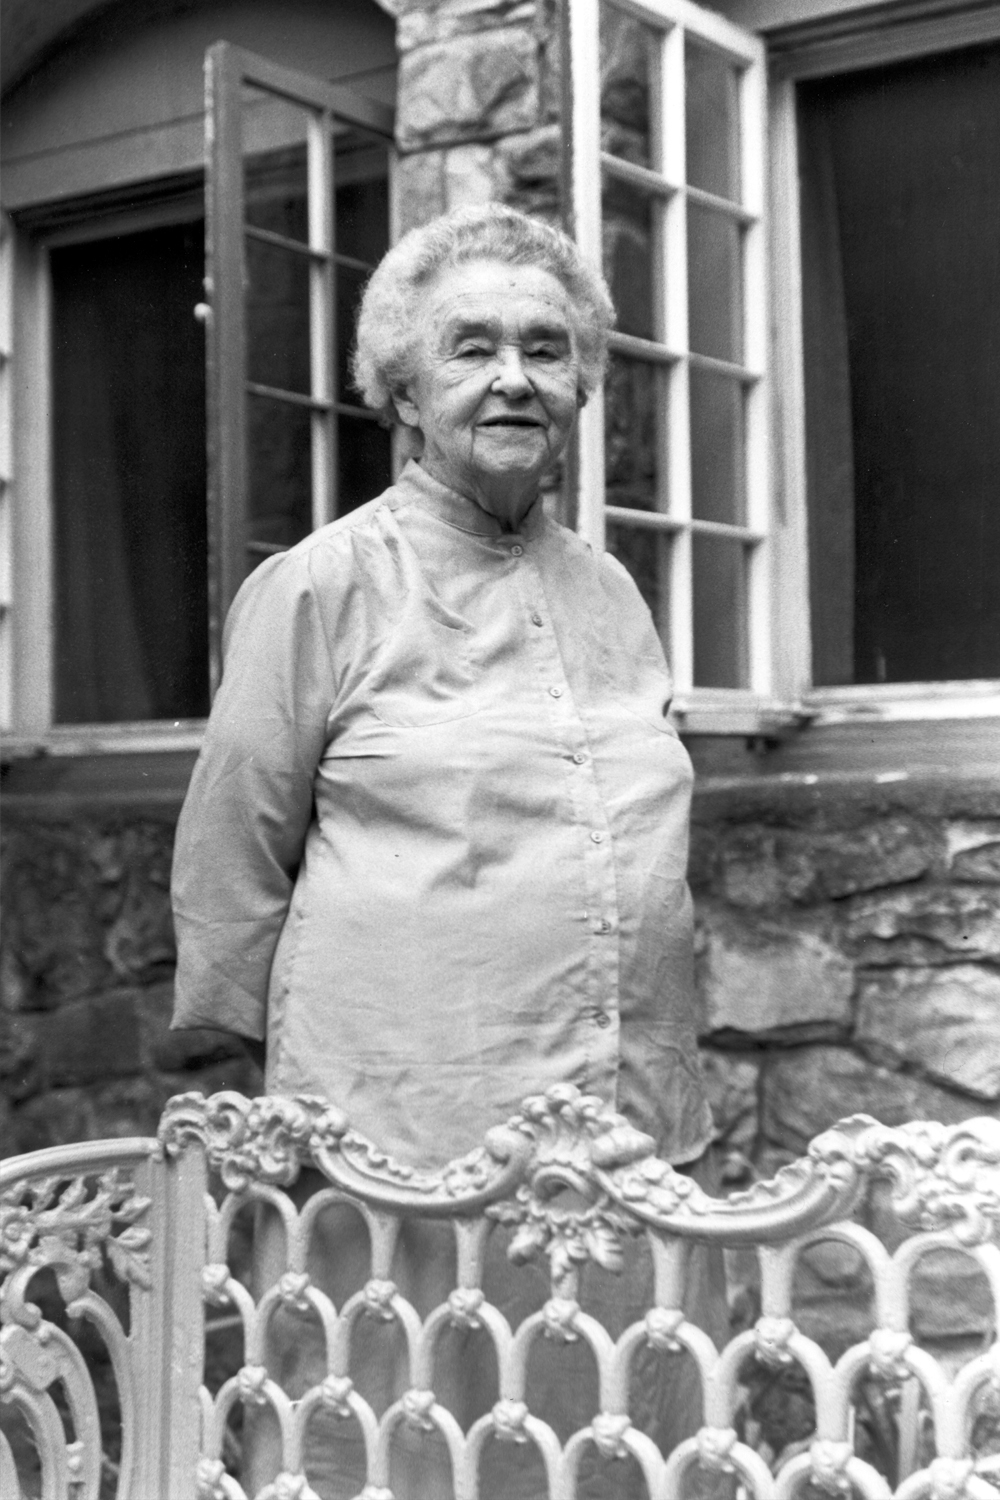 Carolyn Cortner Smith  In the 1930's, another pioneer, Carolyn Cortner Smith, Alabama's first licensed female architect, designed the stone structures in the park that were built by the CWA and the WPA. In 1941, the park was dedicated as Delano Park in memory of Franklin Delano Roosevelt's mother.